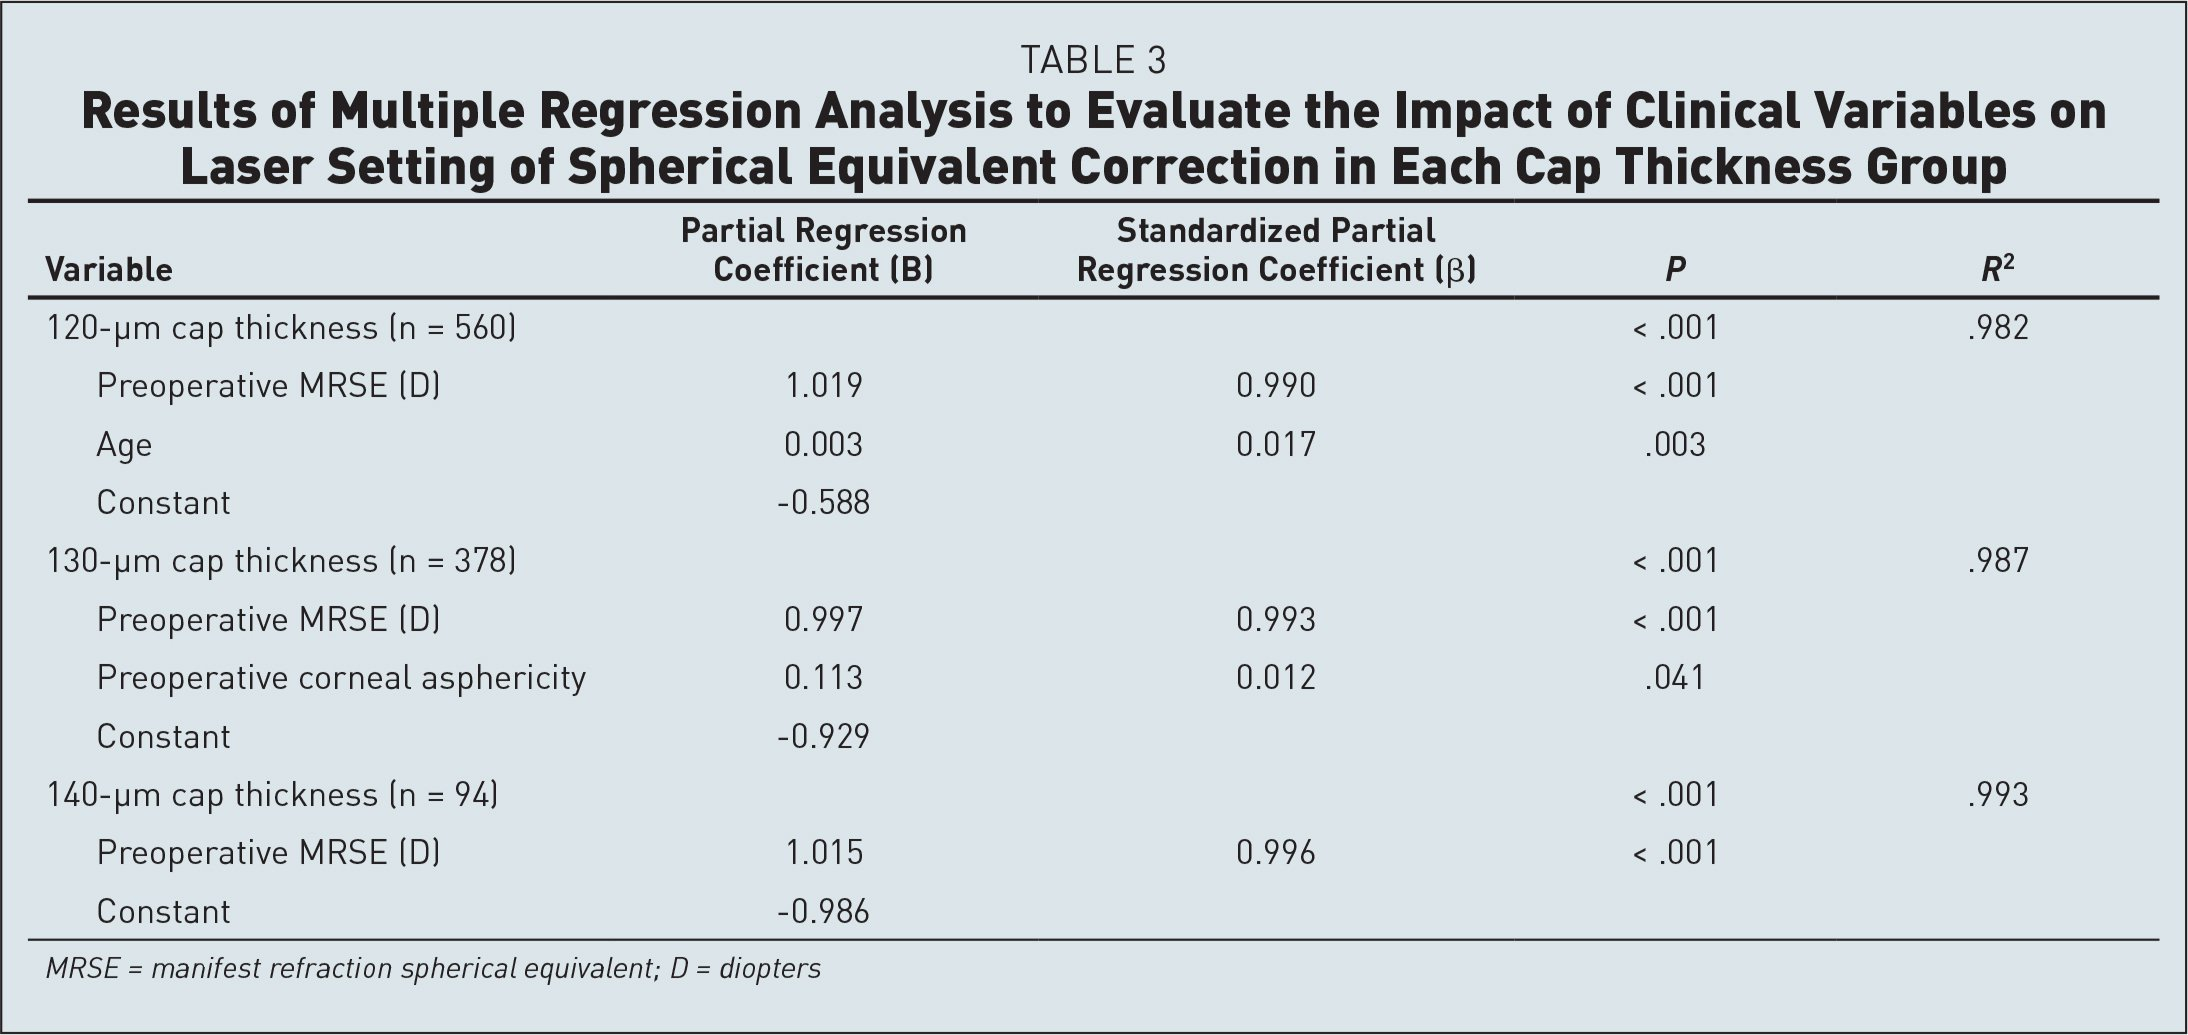 Results of Multiple Regression Analysis to Evaluate the Impact of Clinical Variables on Laser Setting of Spherical Equivalent Correction in Each Cap Thickness Group